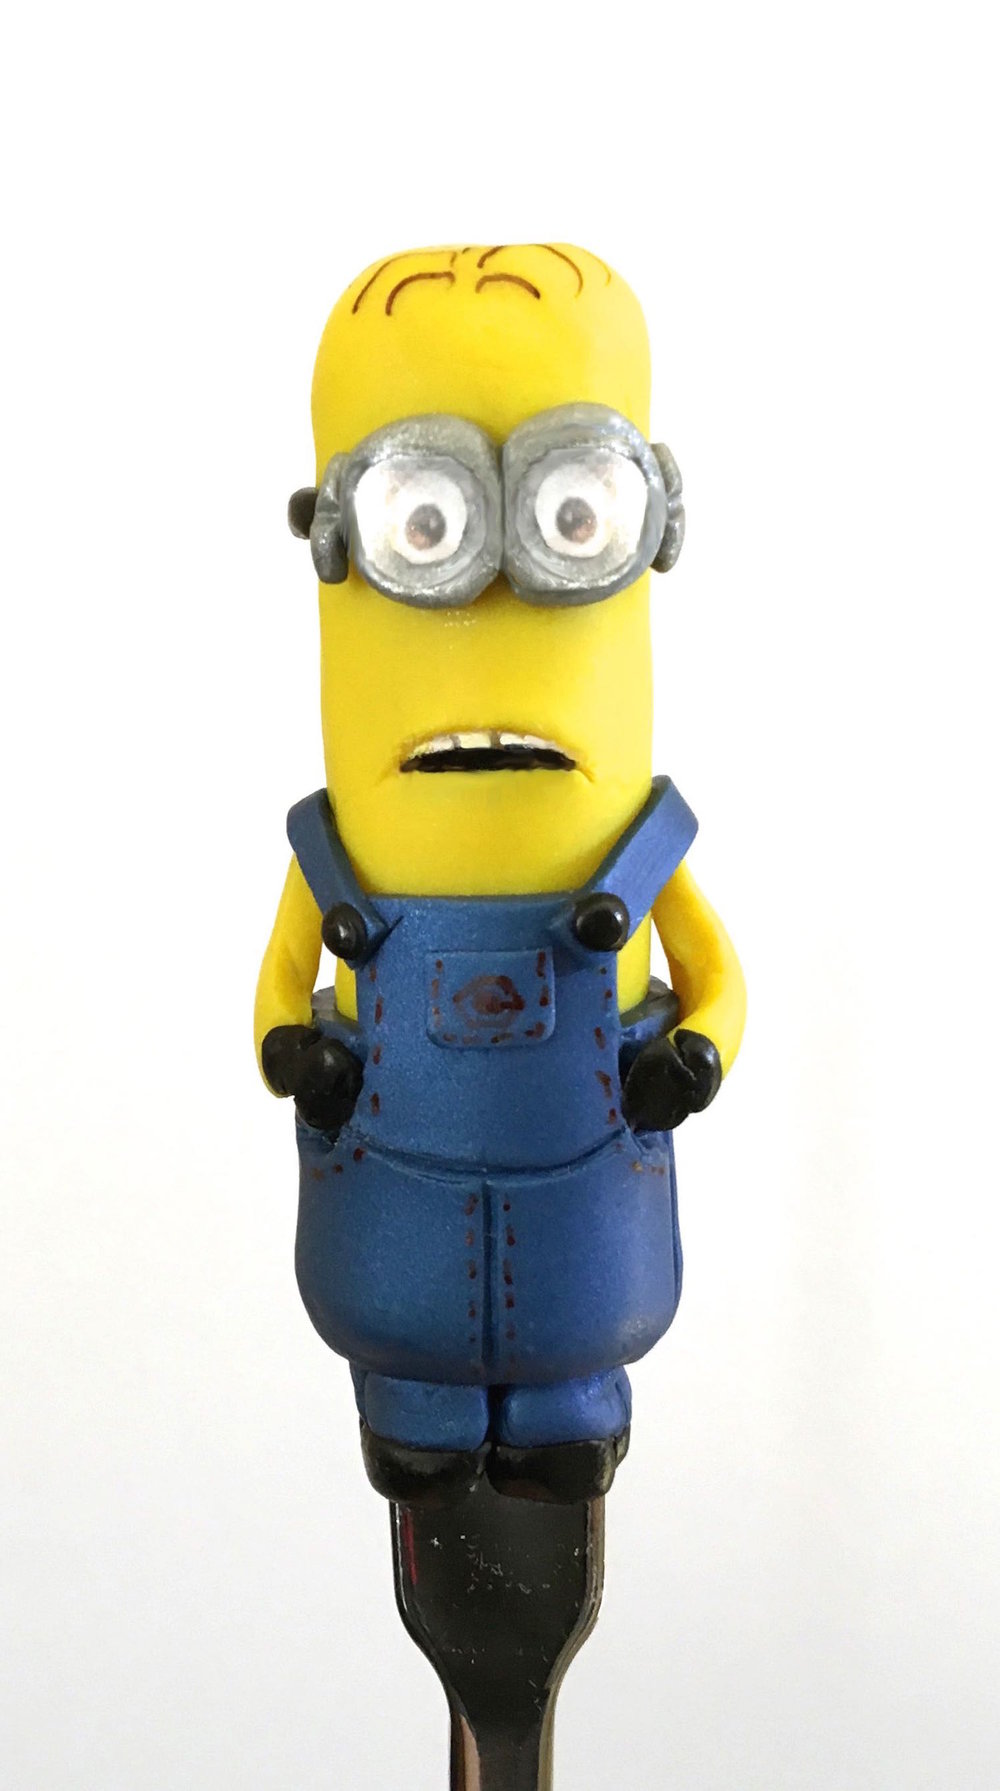 minion measures 3""